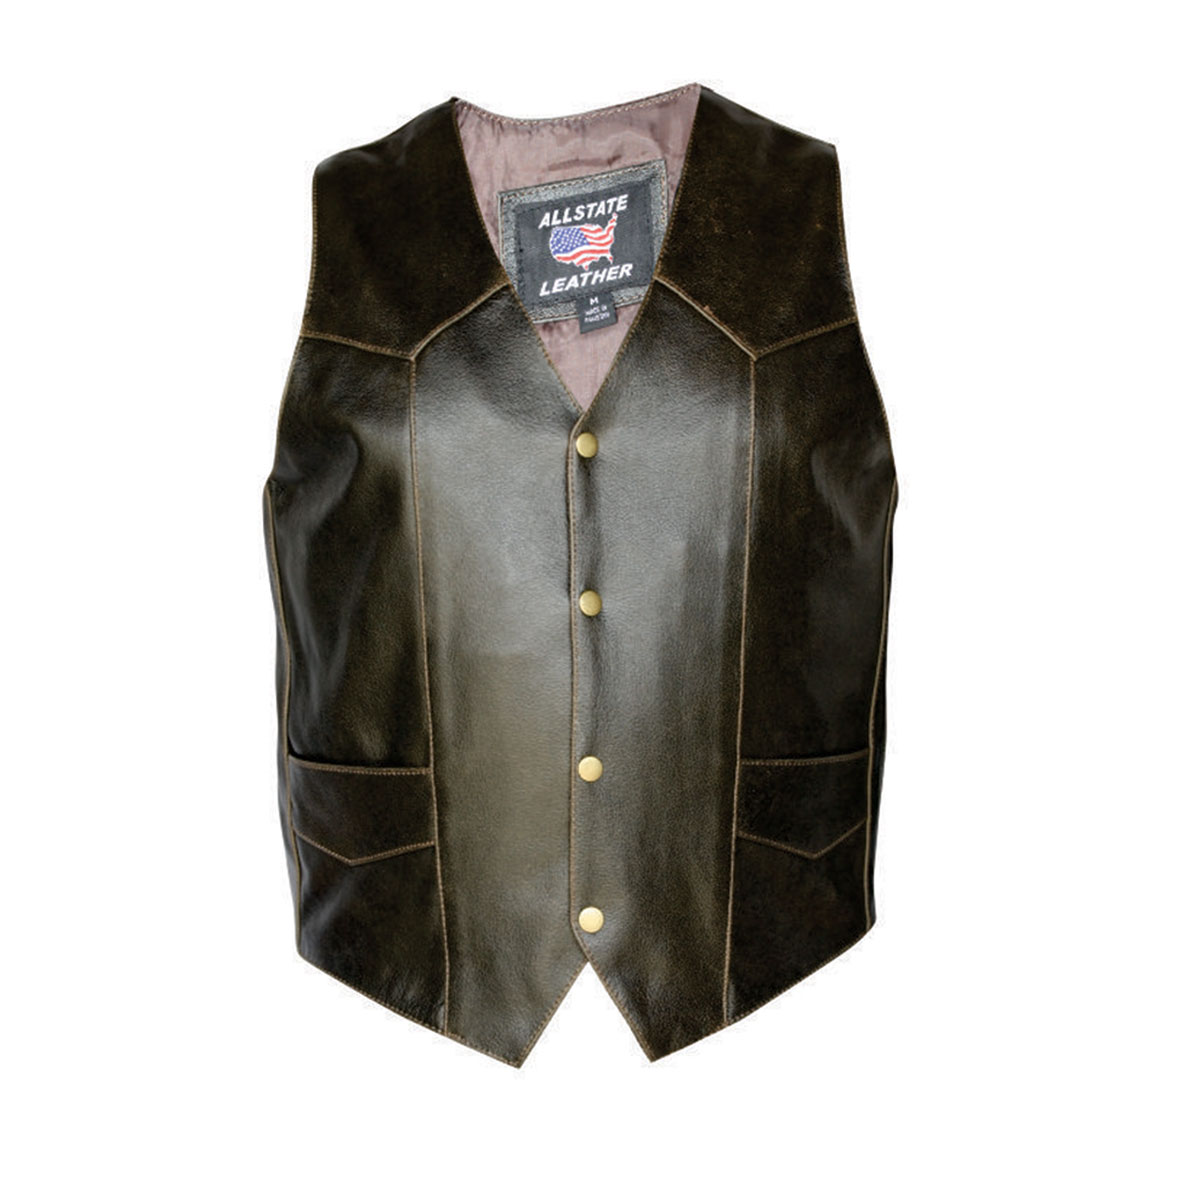 Allstate Leather Inc. Men's Retro Brown Leather Vest